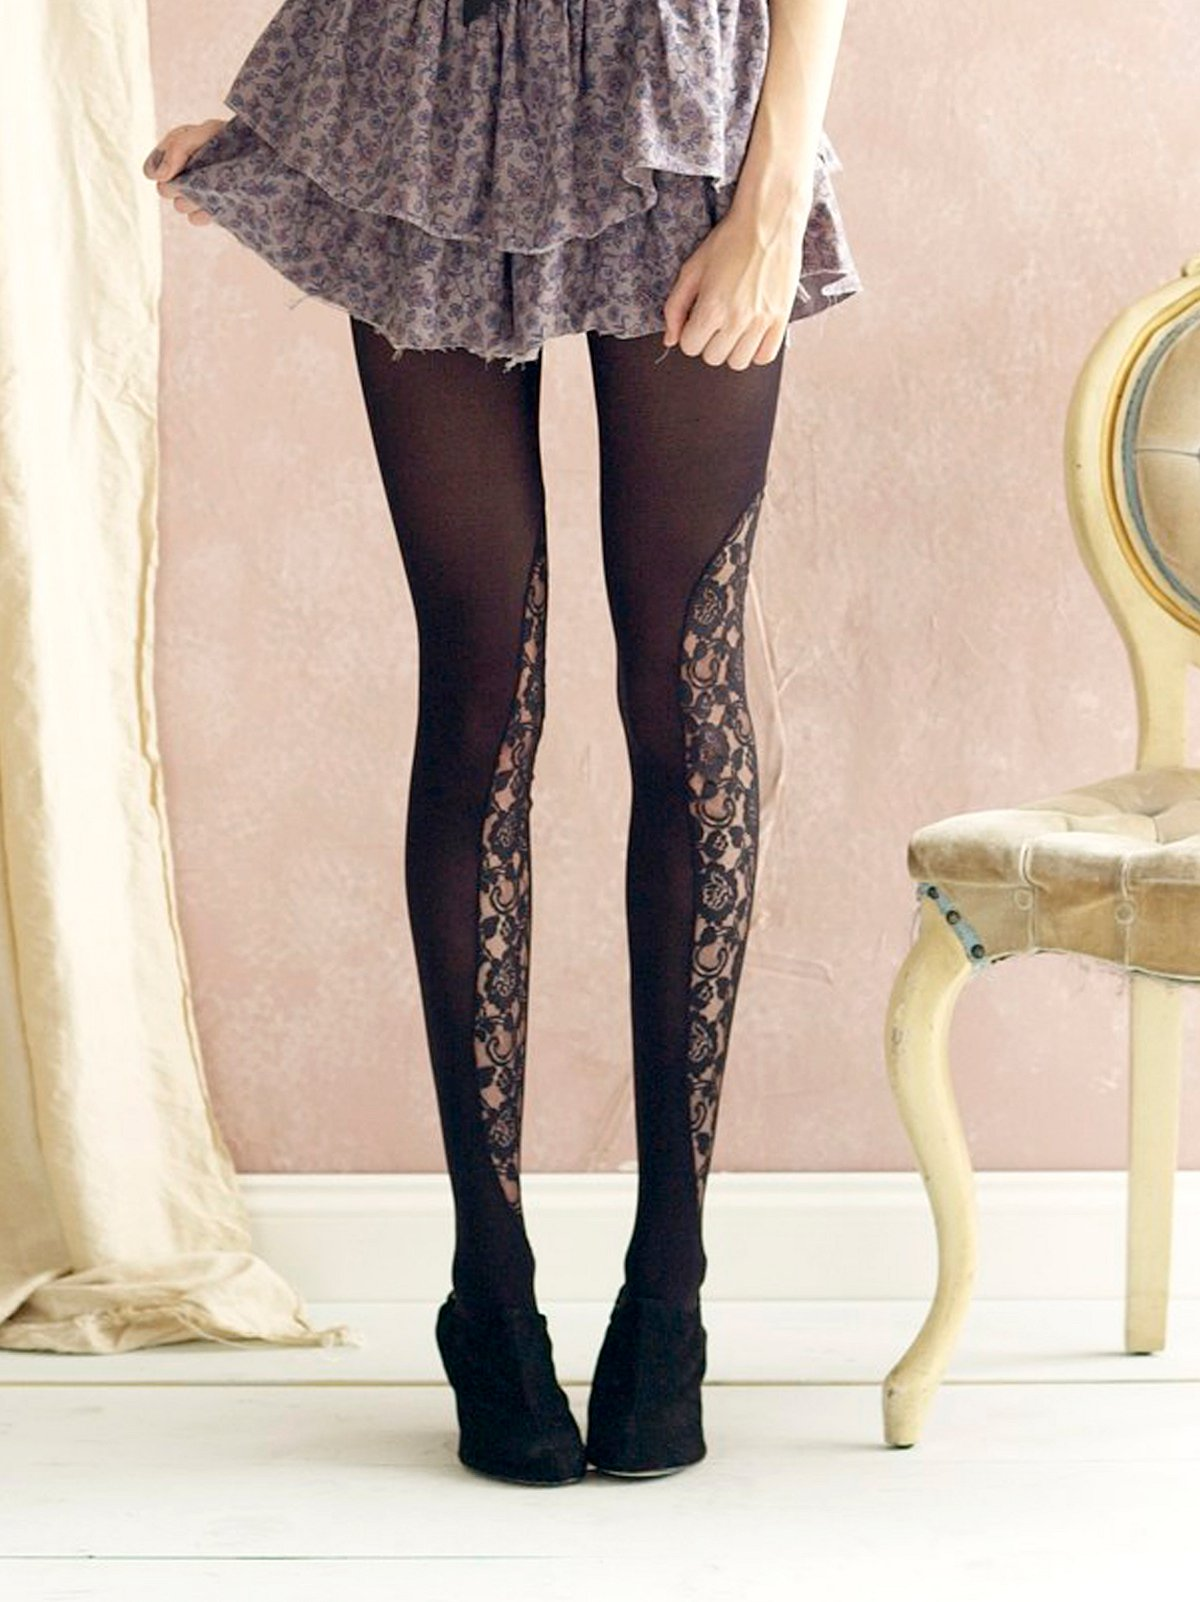 Lace Peek A Boo Tights by Emilio Cavallini